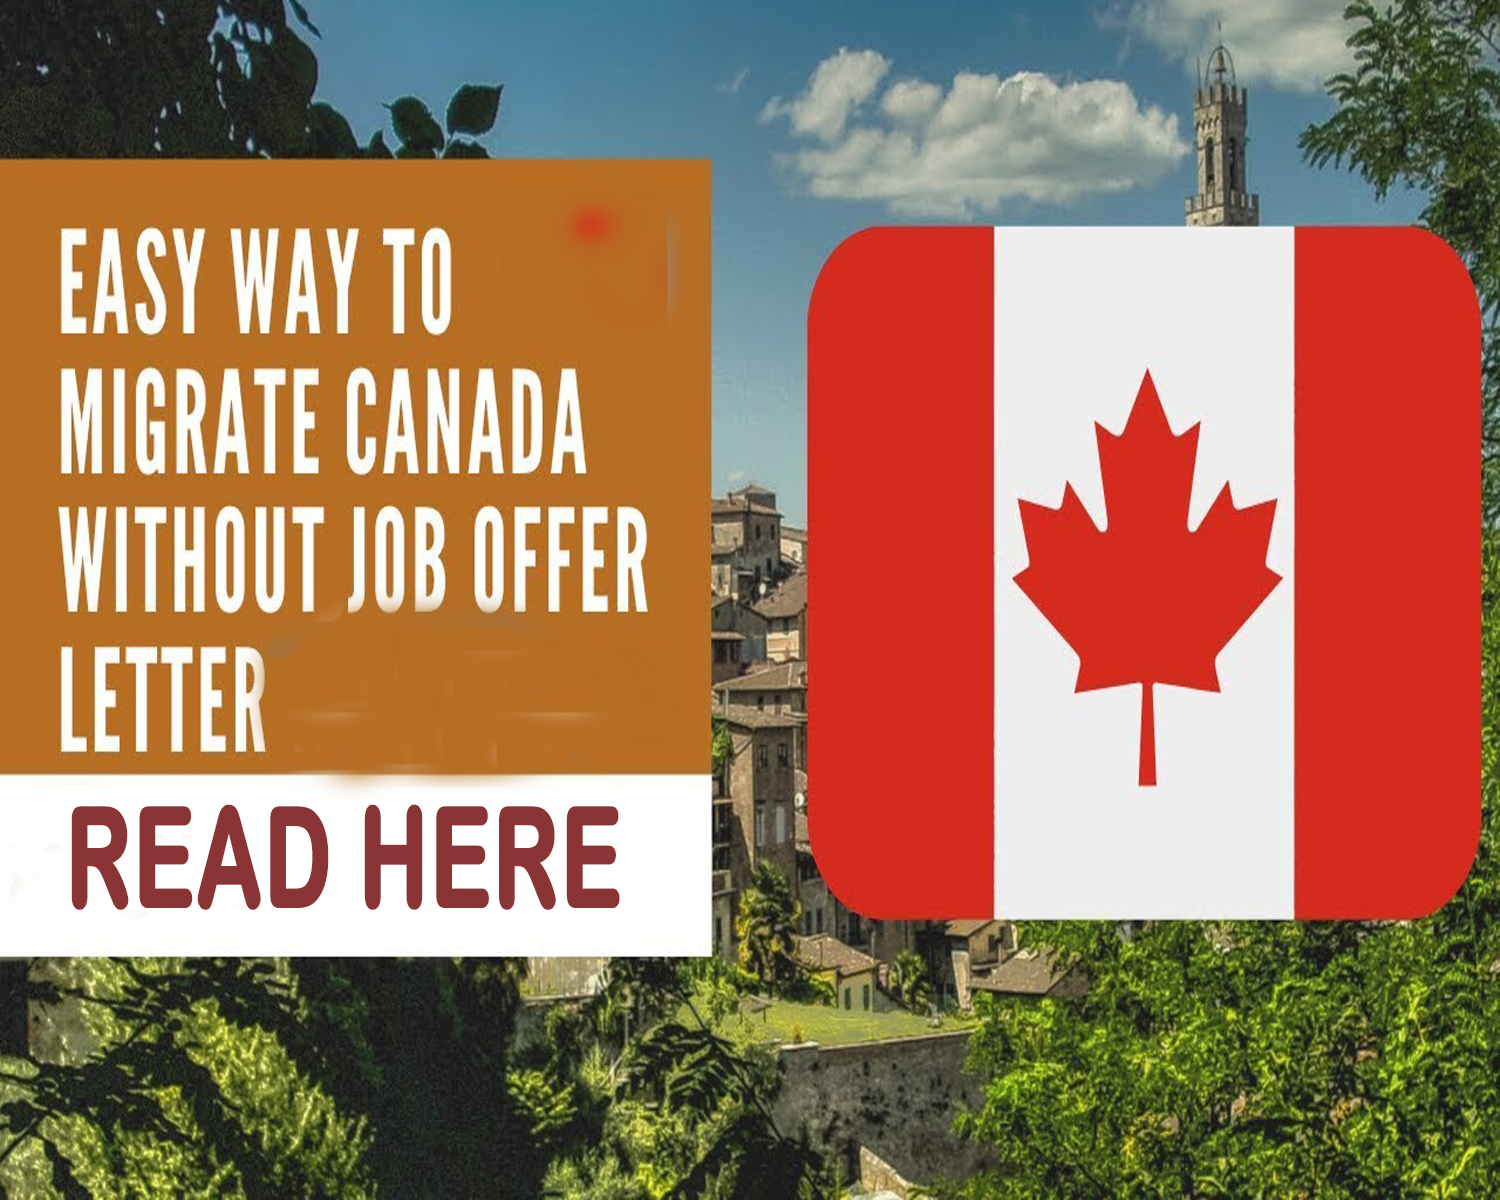 Ways To Migrate To Canada Without a Job Offer